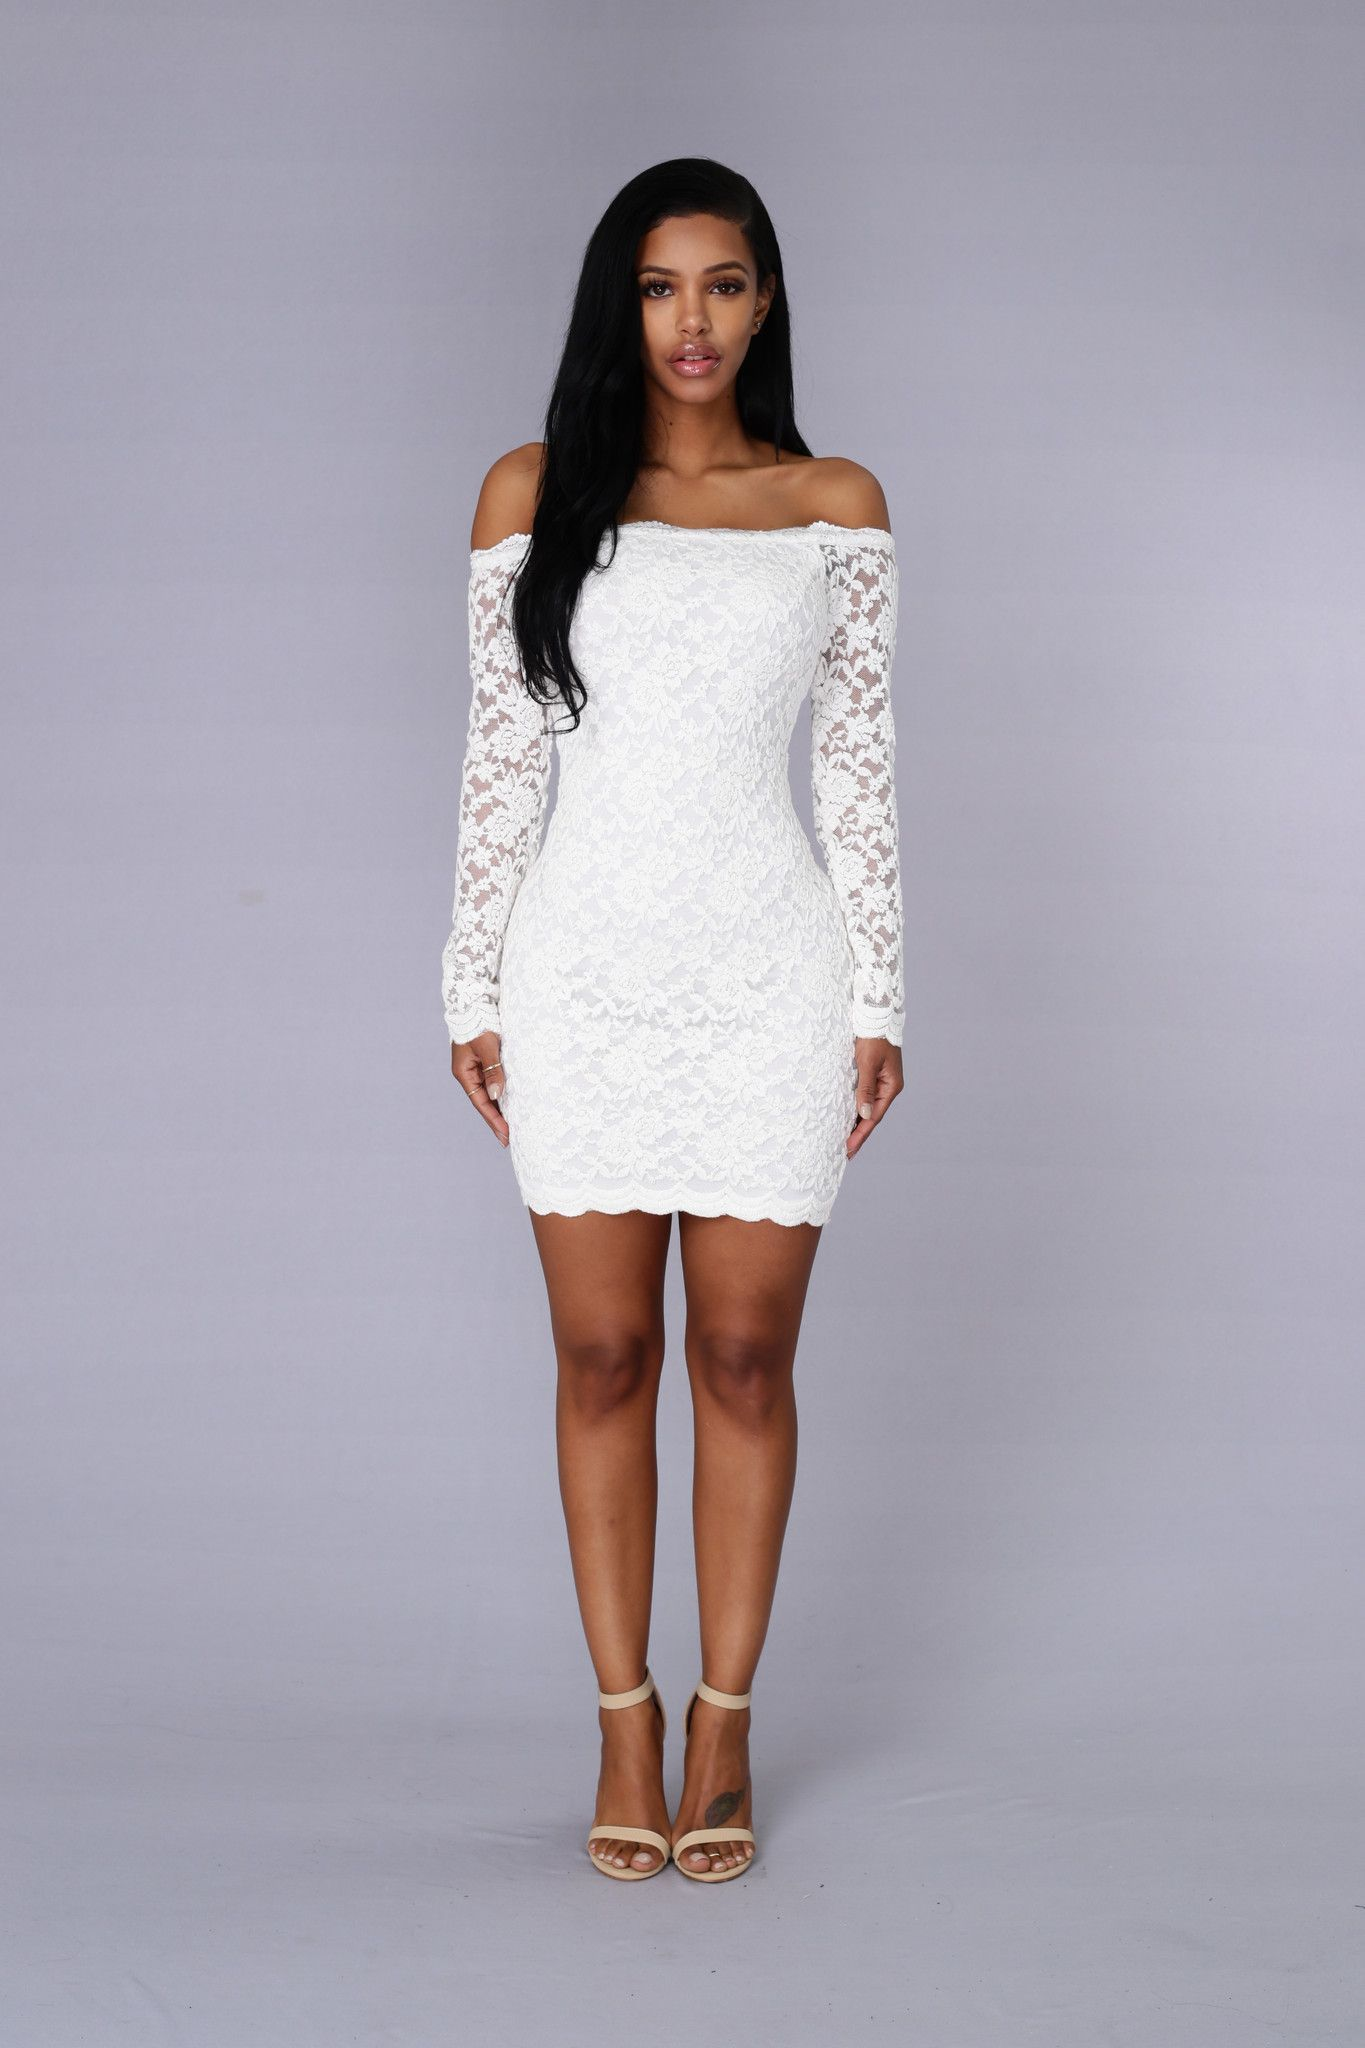 db6ac9501ebc7 Off Shoulder Lace Bodycon Dress - White | Clothes | White lace ...